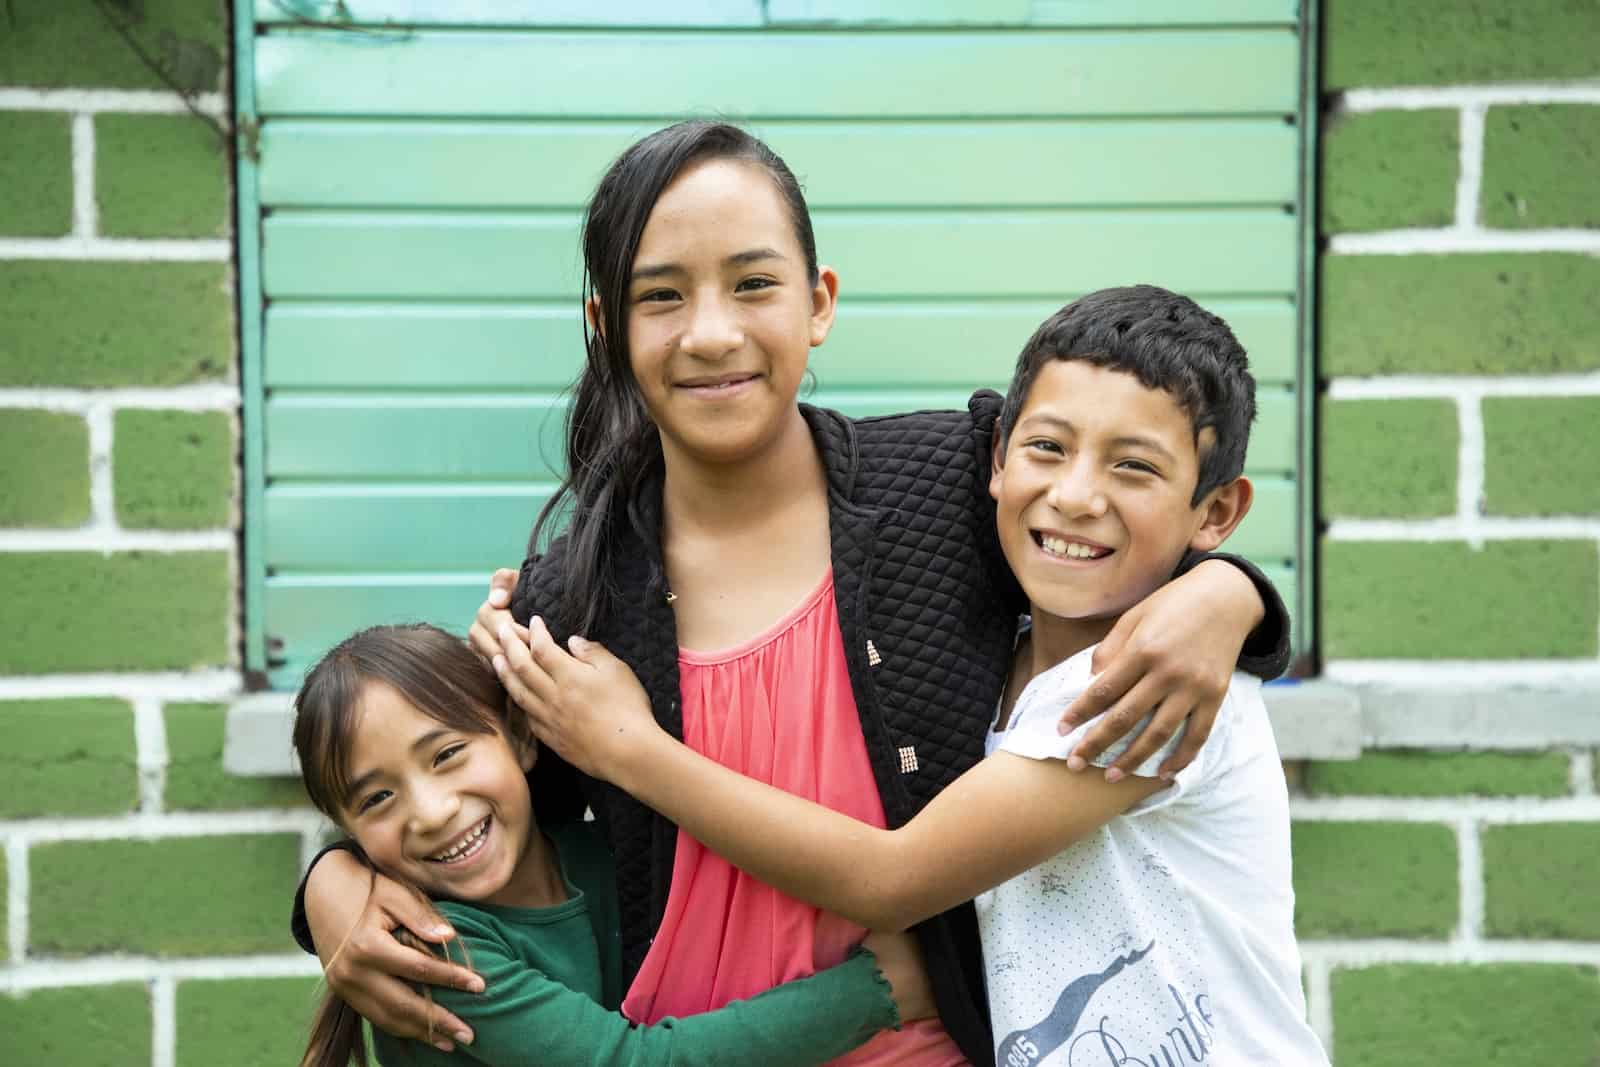 International Day of Friendship: Three children hug each other, standing in front of a green wall.